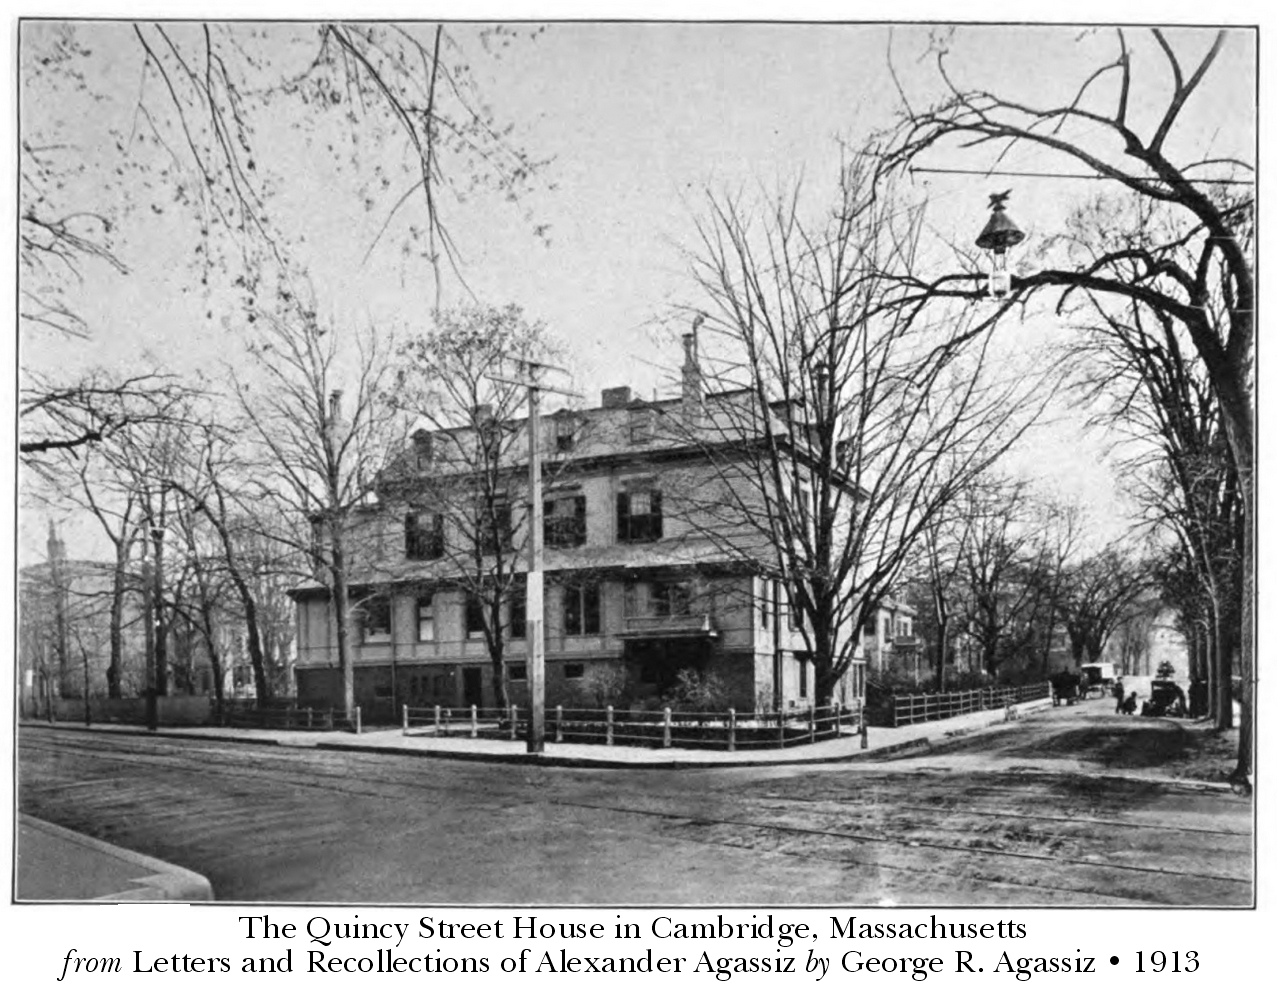 The Quincy Street House in Cambridge, Massachusetts - from: Letters and Recollections of Alexander Agassiz - George R. Agassiz - 1913